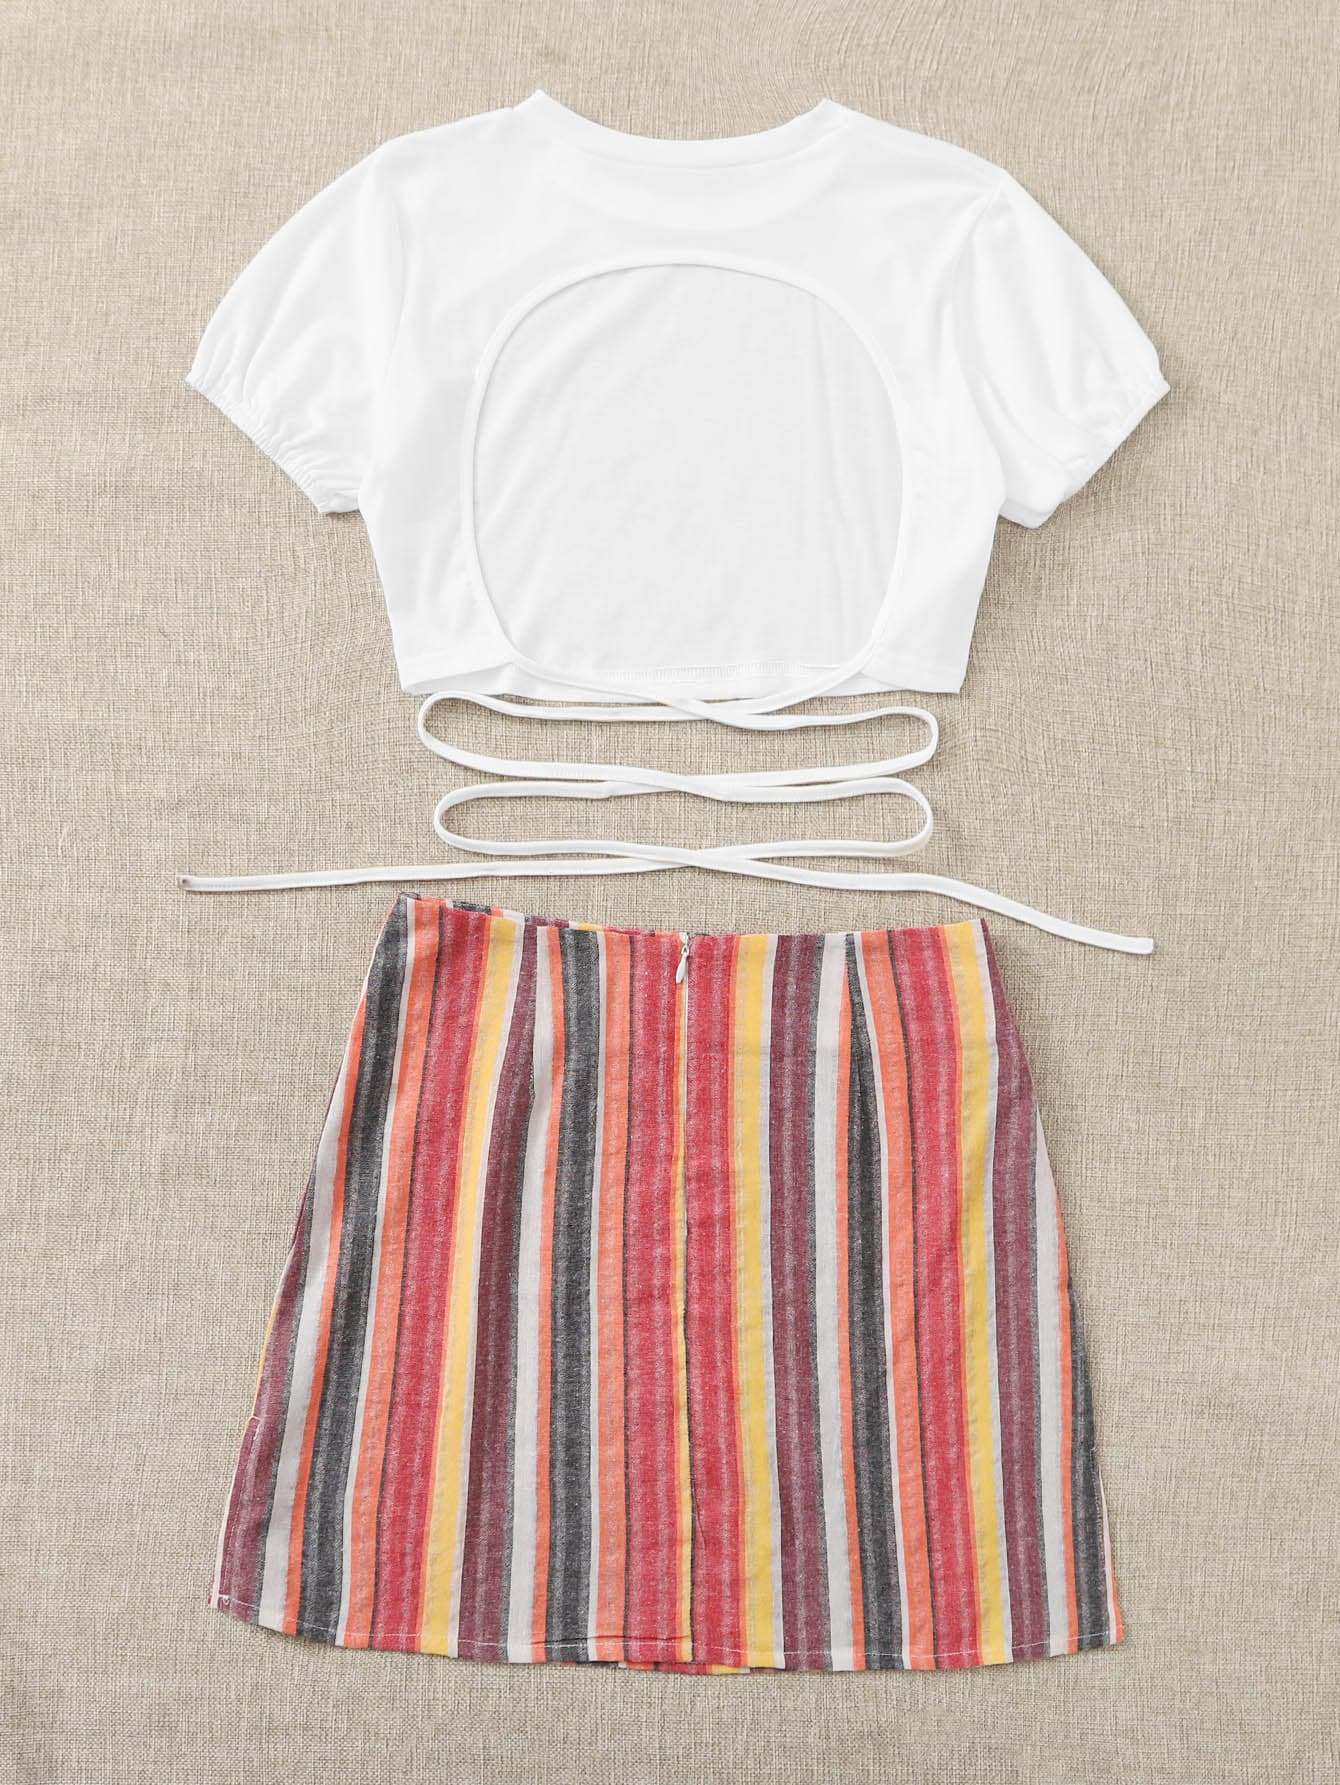 Cut Out Criss Cross Tie Back Tee & Striped Skirt - FLJ CORPORATIONS